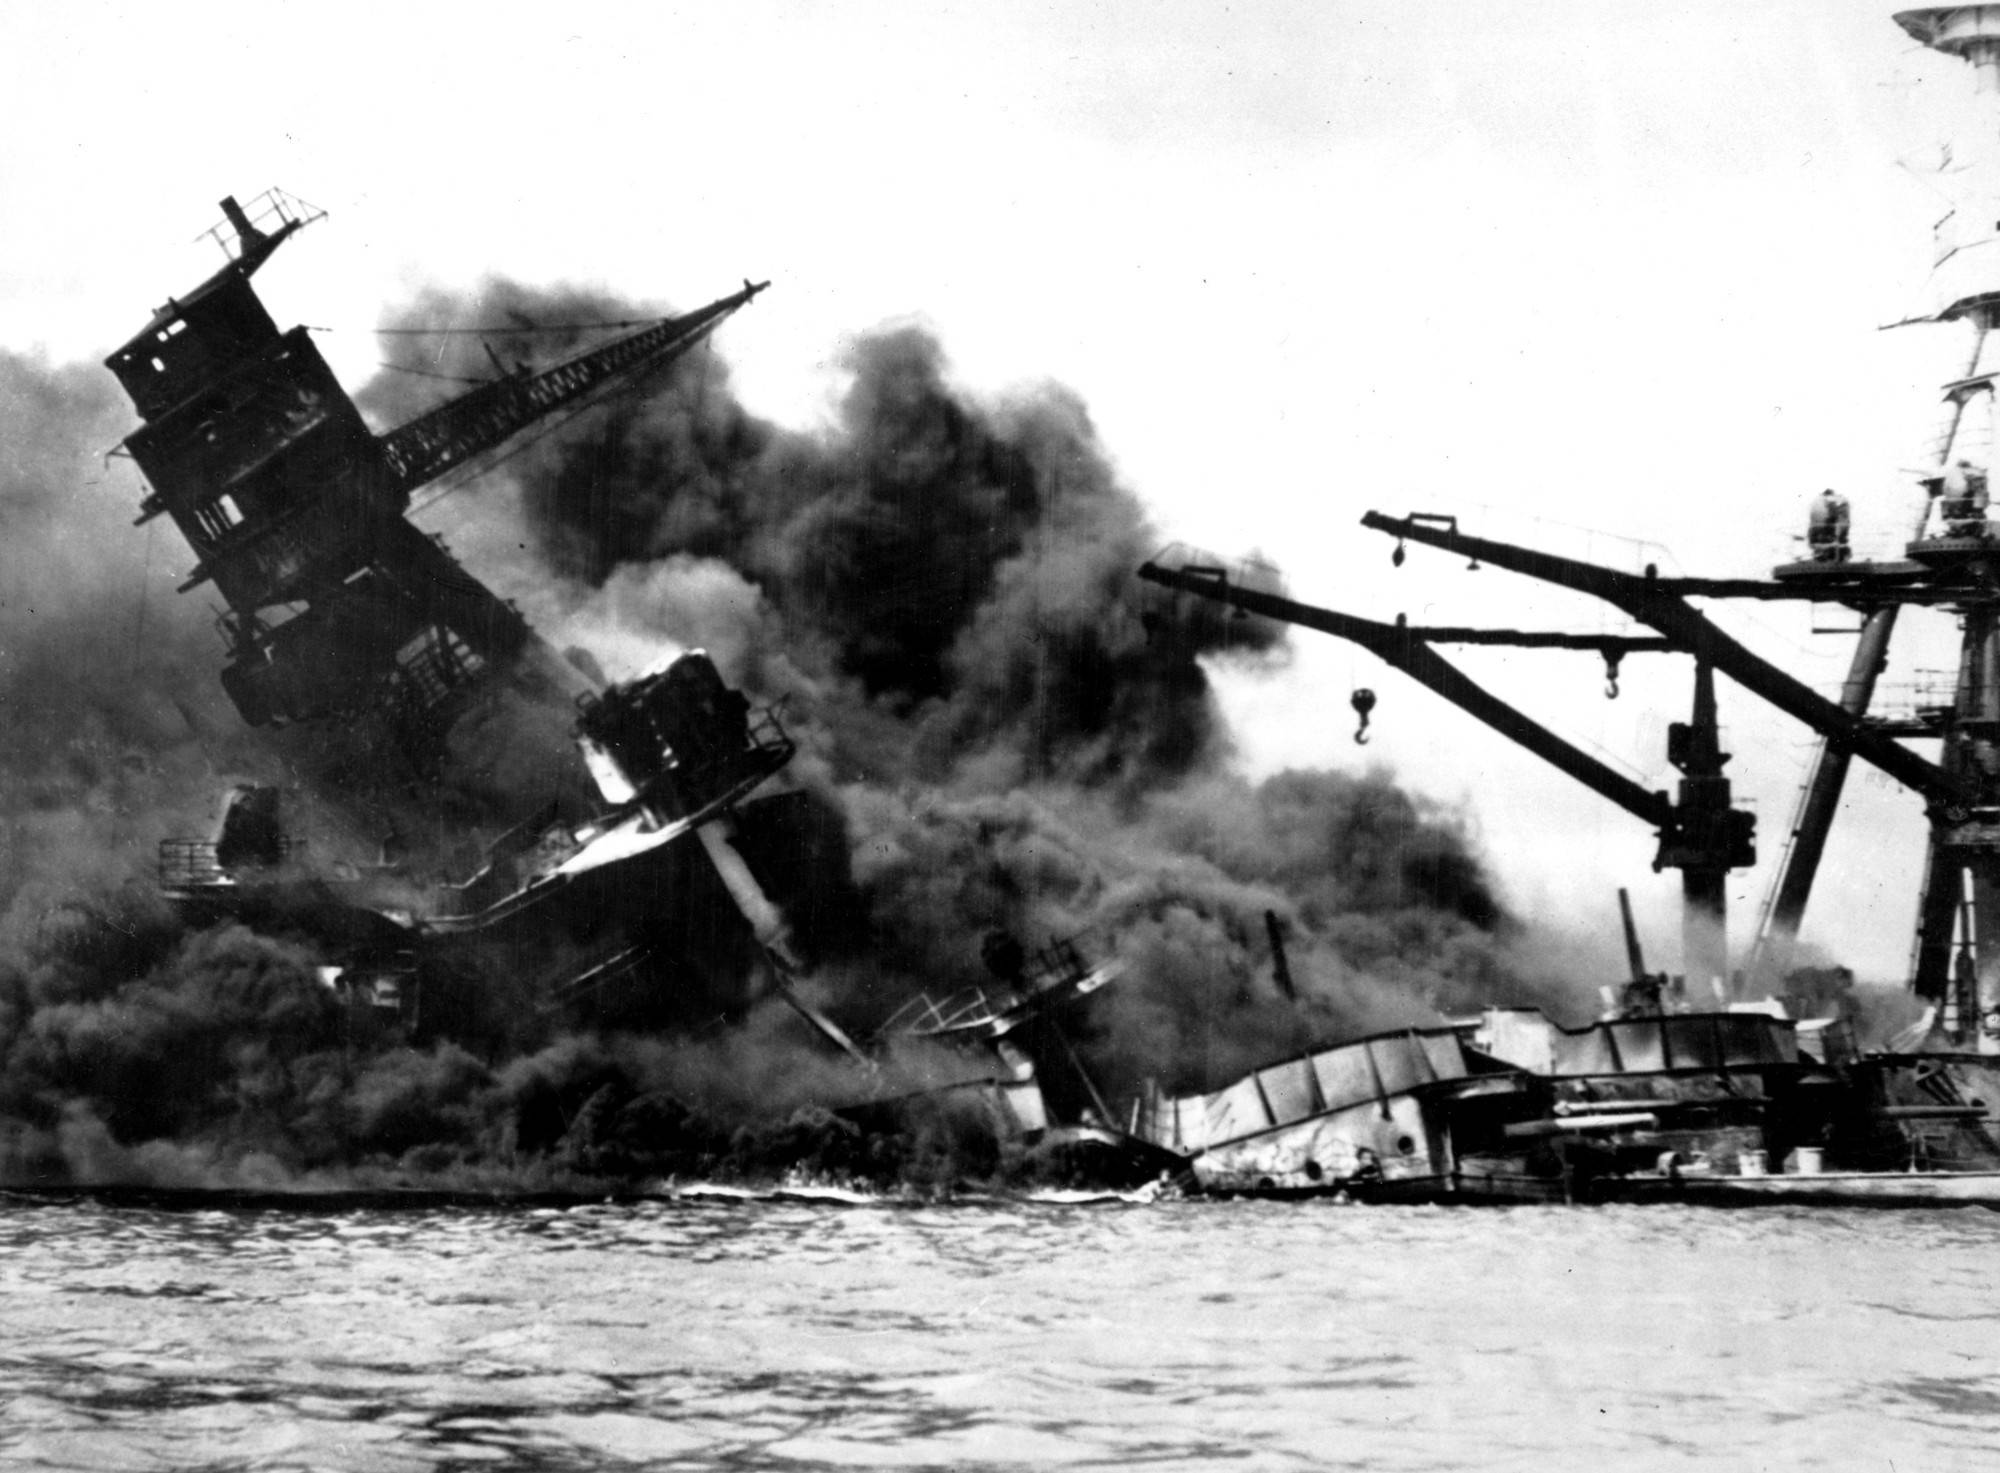 The battleship USS Arizona belches smoke as it topples over into the sea during a Japanese surprise attack on Pearl Harbor, Hawaii, in this Dec. 7, 1941 file photo. (AP Photo/FILE)